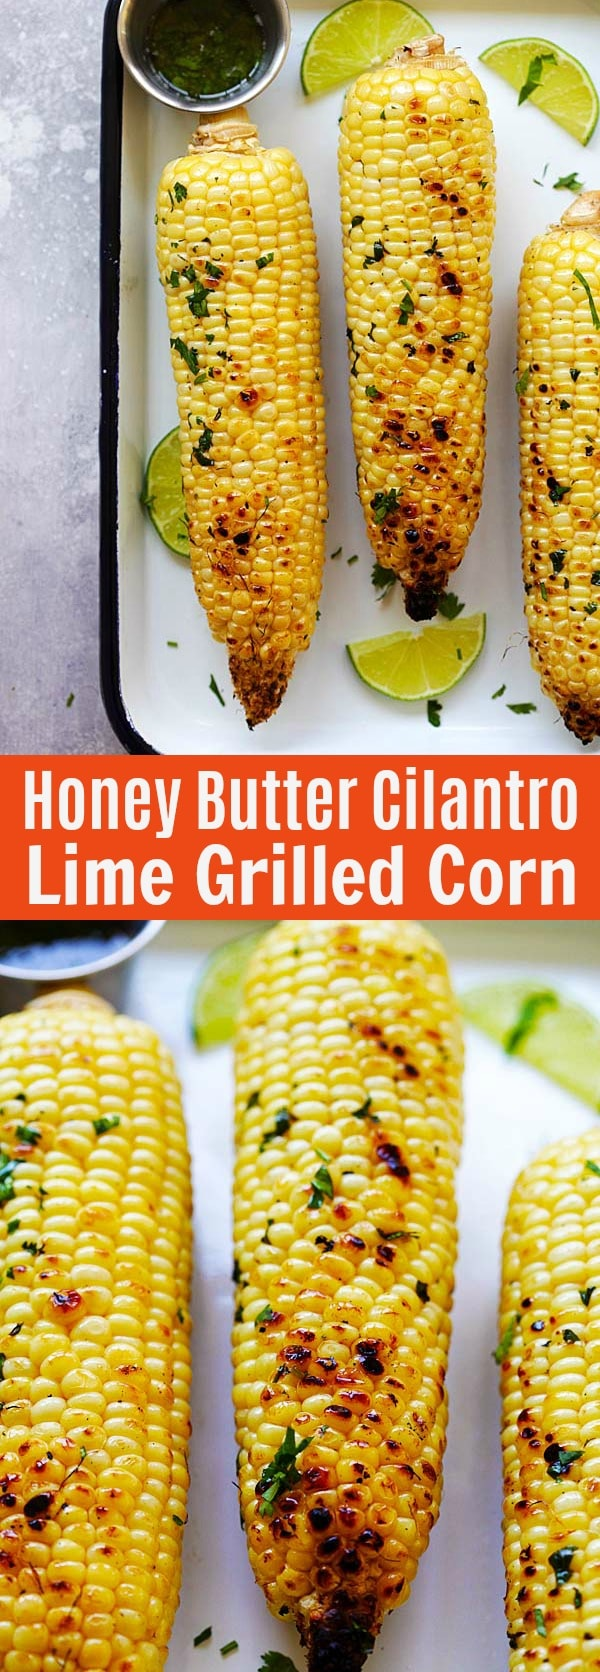 Honey Butter Cilantro Lime Grilled Corn - the best buttery grilled corn recipe with honey, cilantro and lime juice. Perfect balance of flavors   rasamalaysia.com